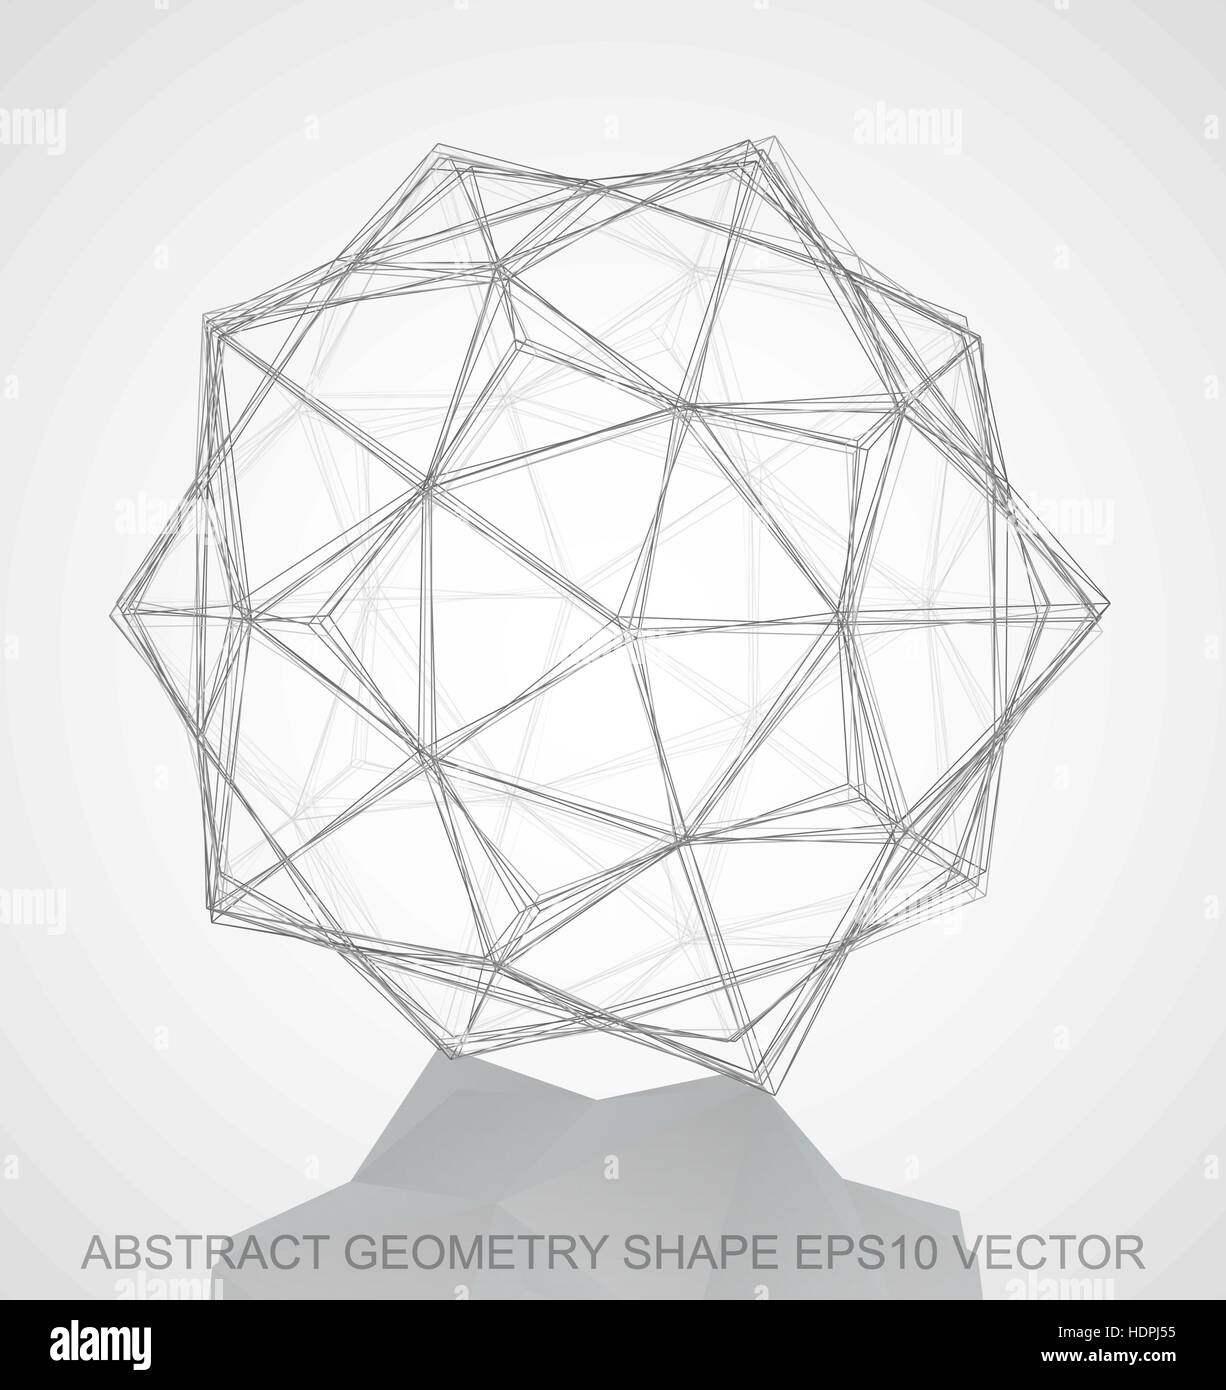 Abstract stereometry shape pencil sketched dodecahedron with reflection hand drawn 3d polygonal dodecahedron eps 10 vector illustration